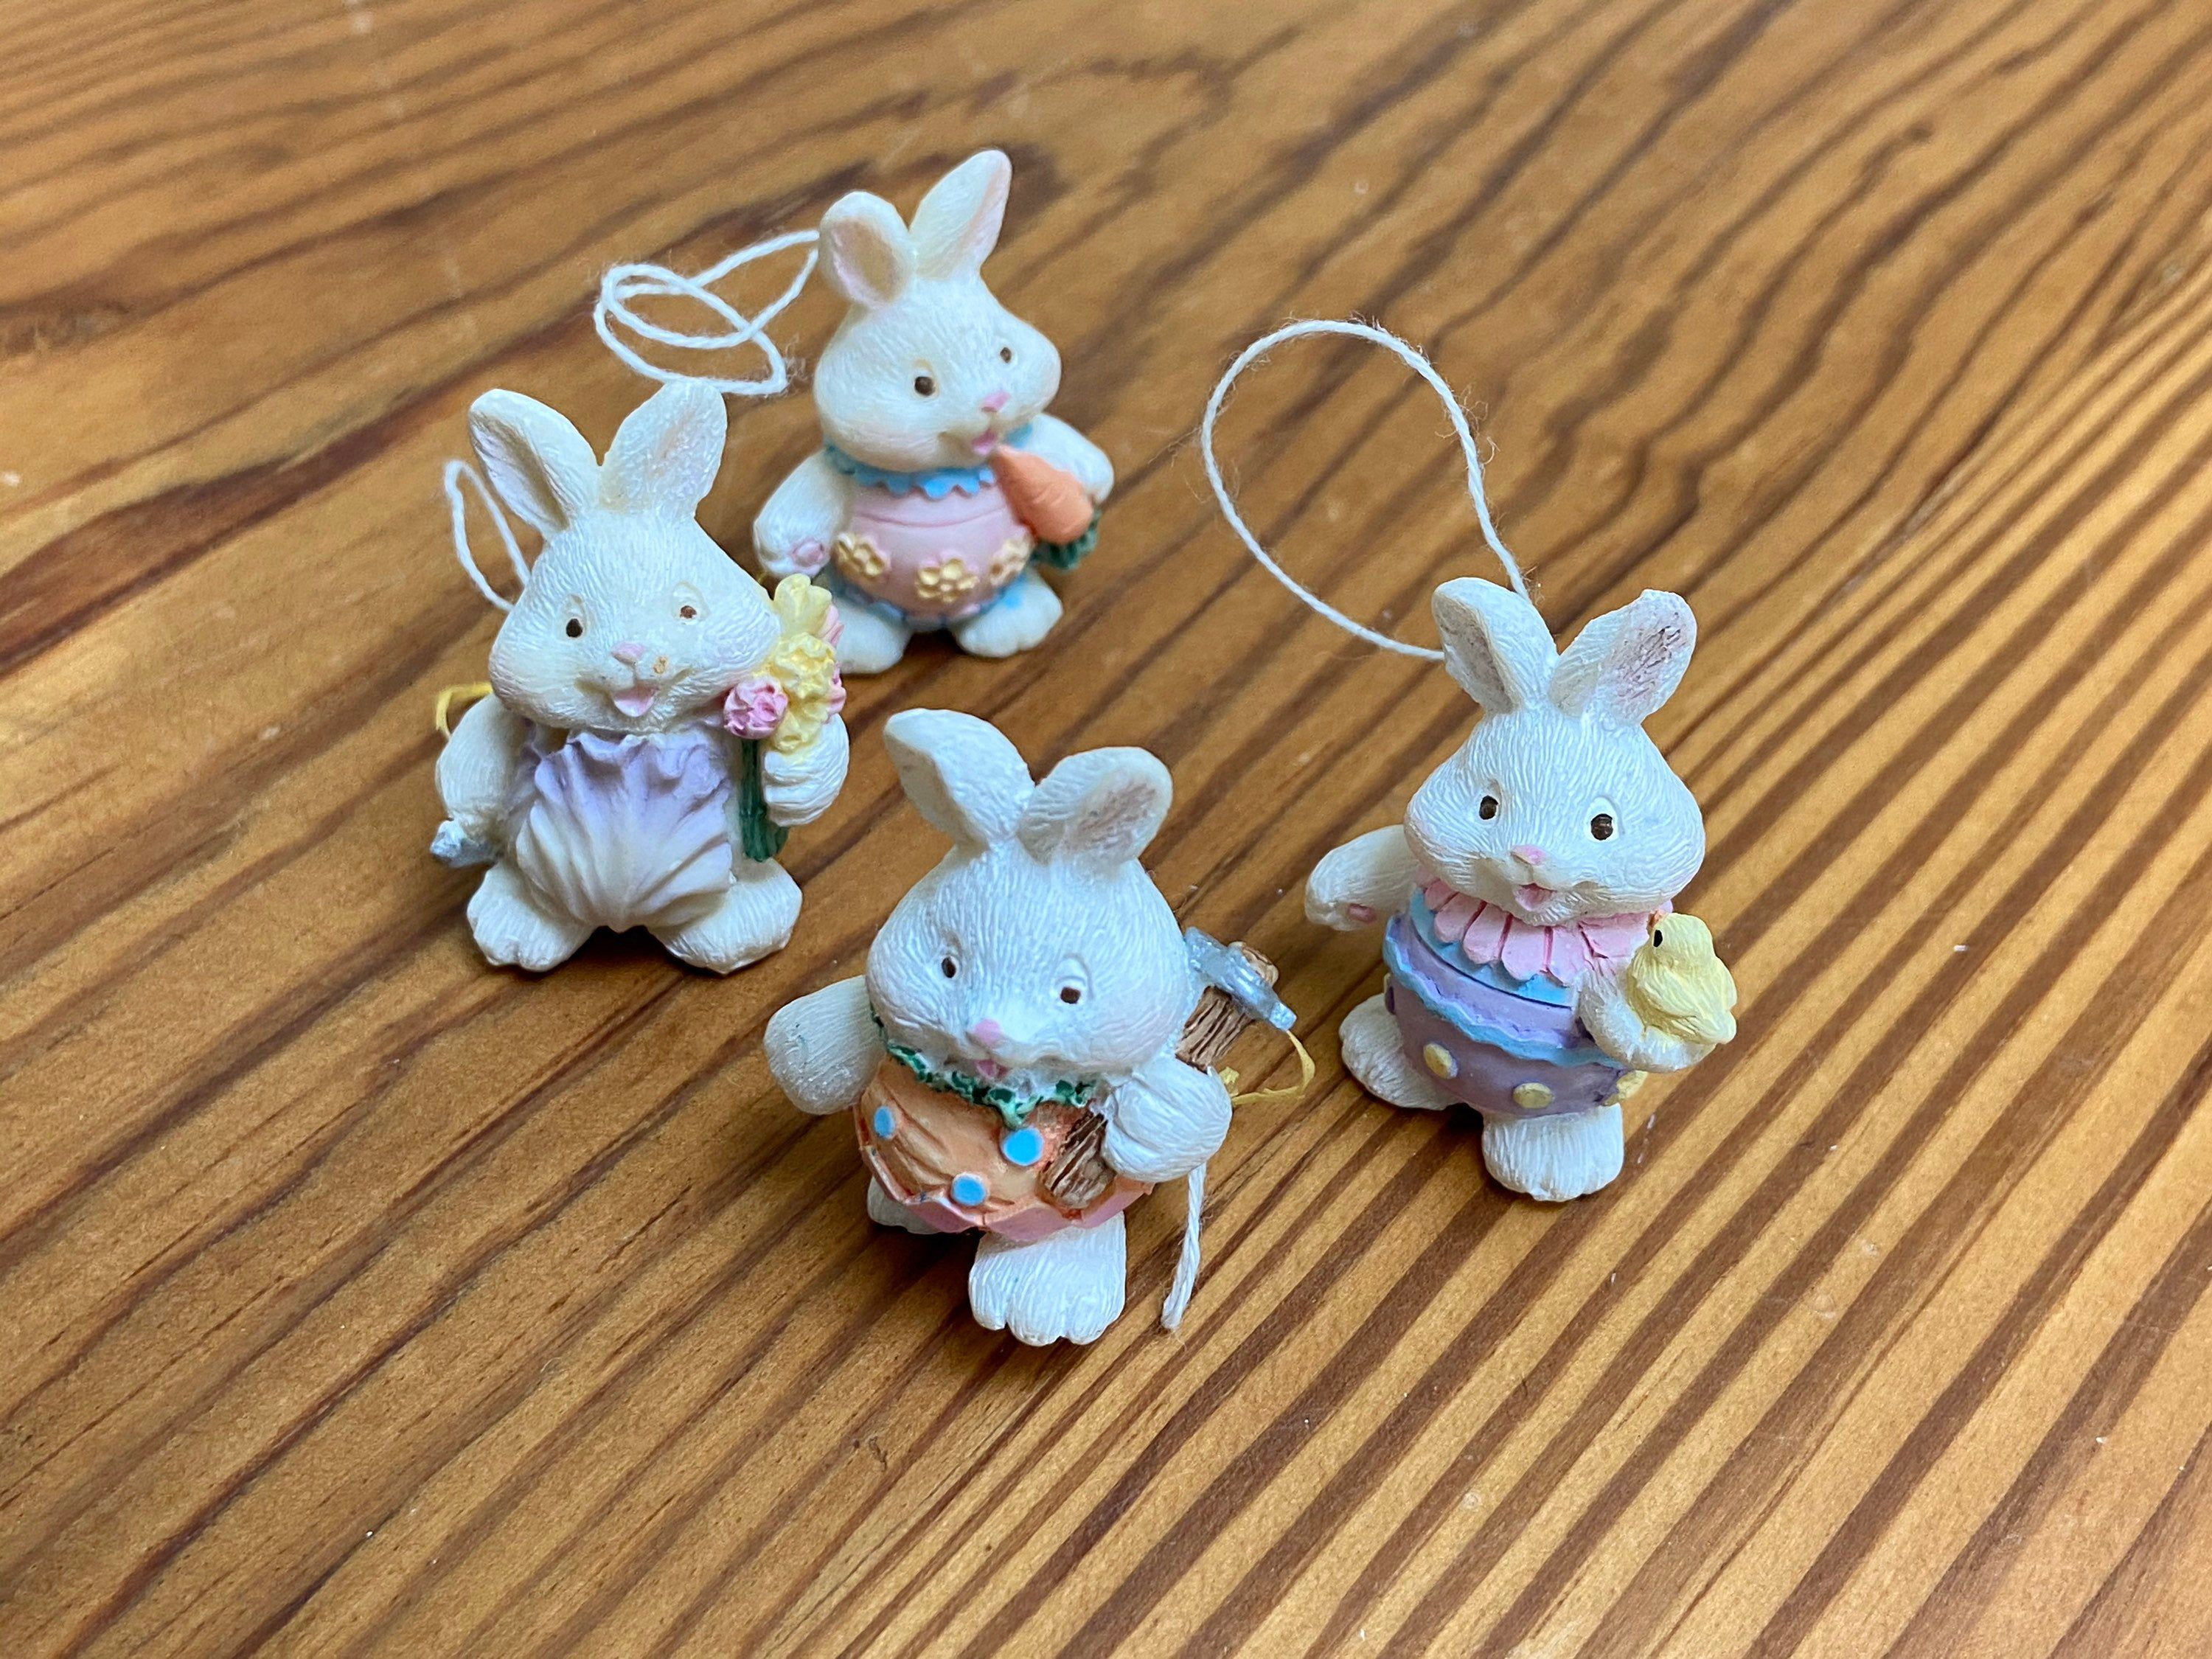 vintage Easter miniature wooden rabbits or bunnies ornaments: 4 female figurines playing instrument flower scene,handmade handpainted